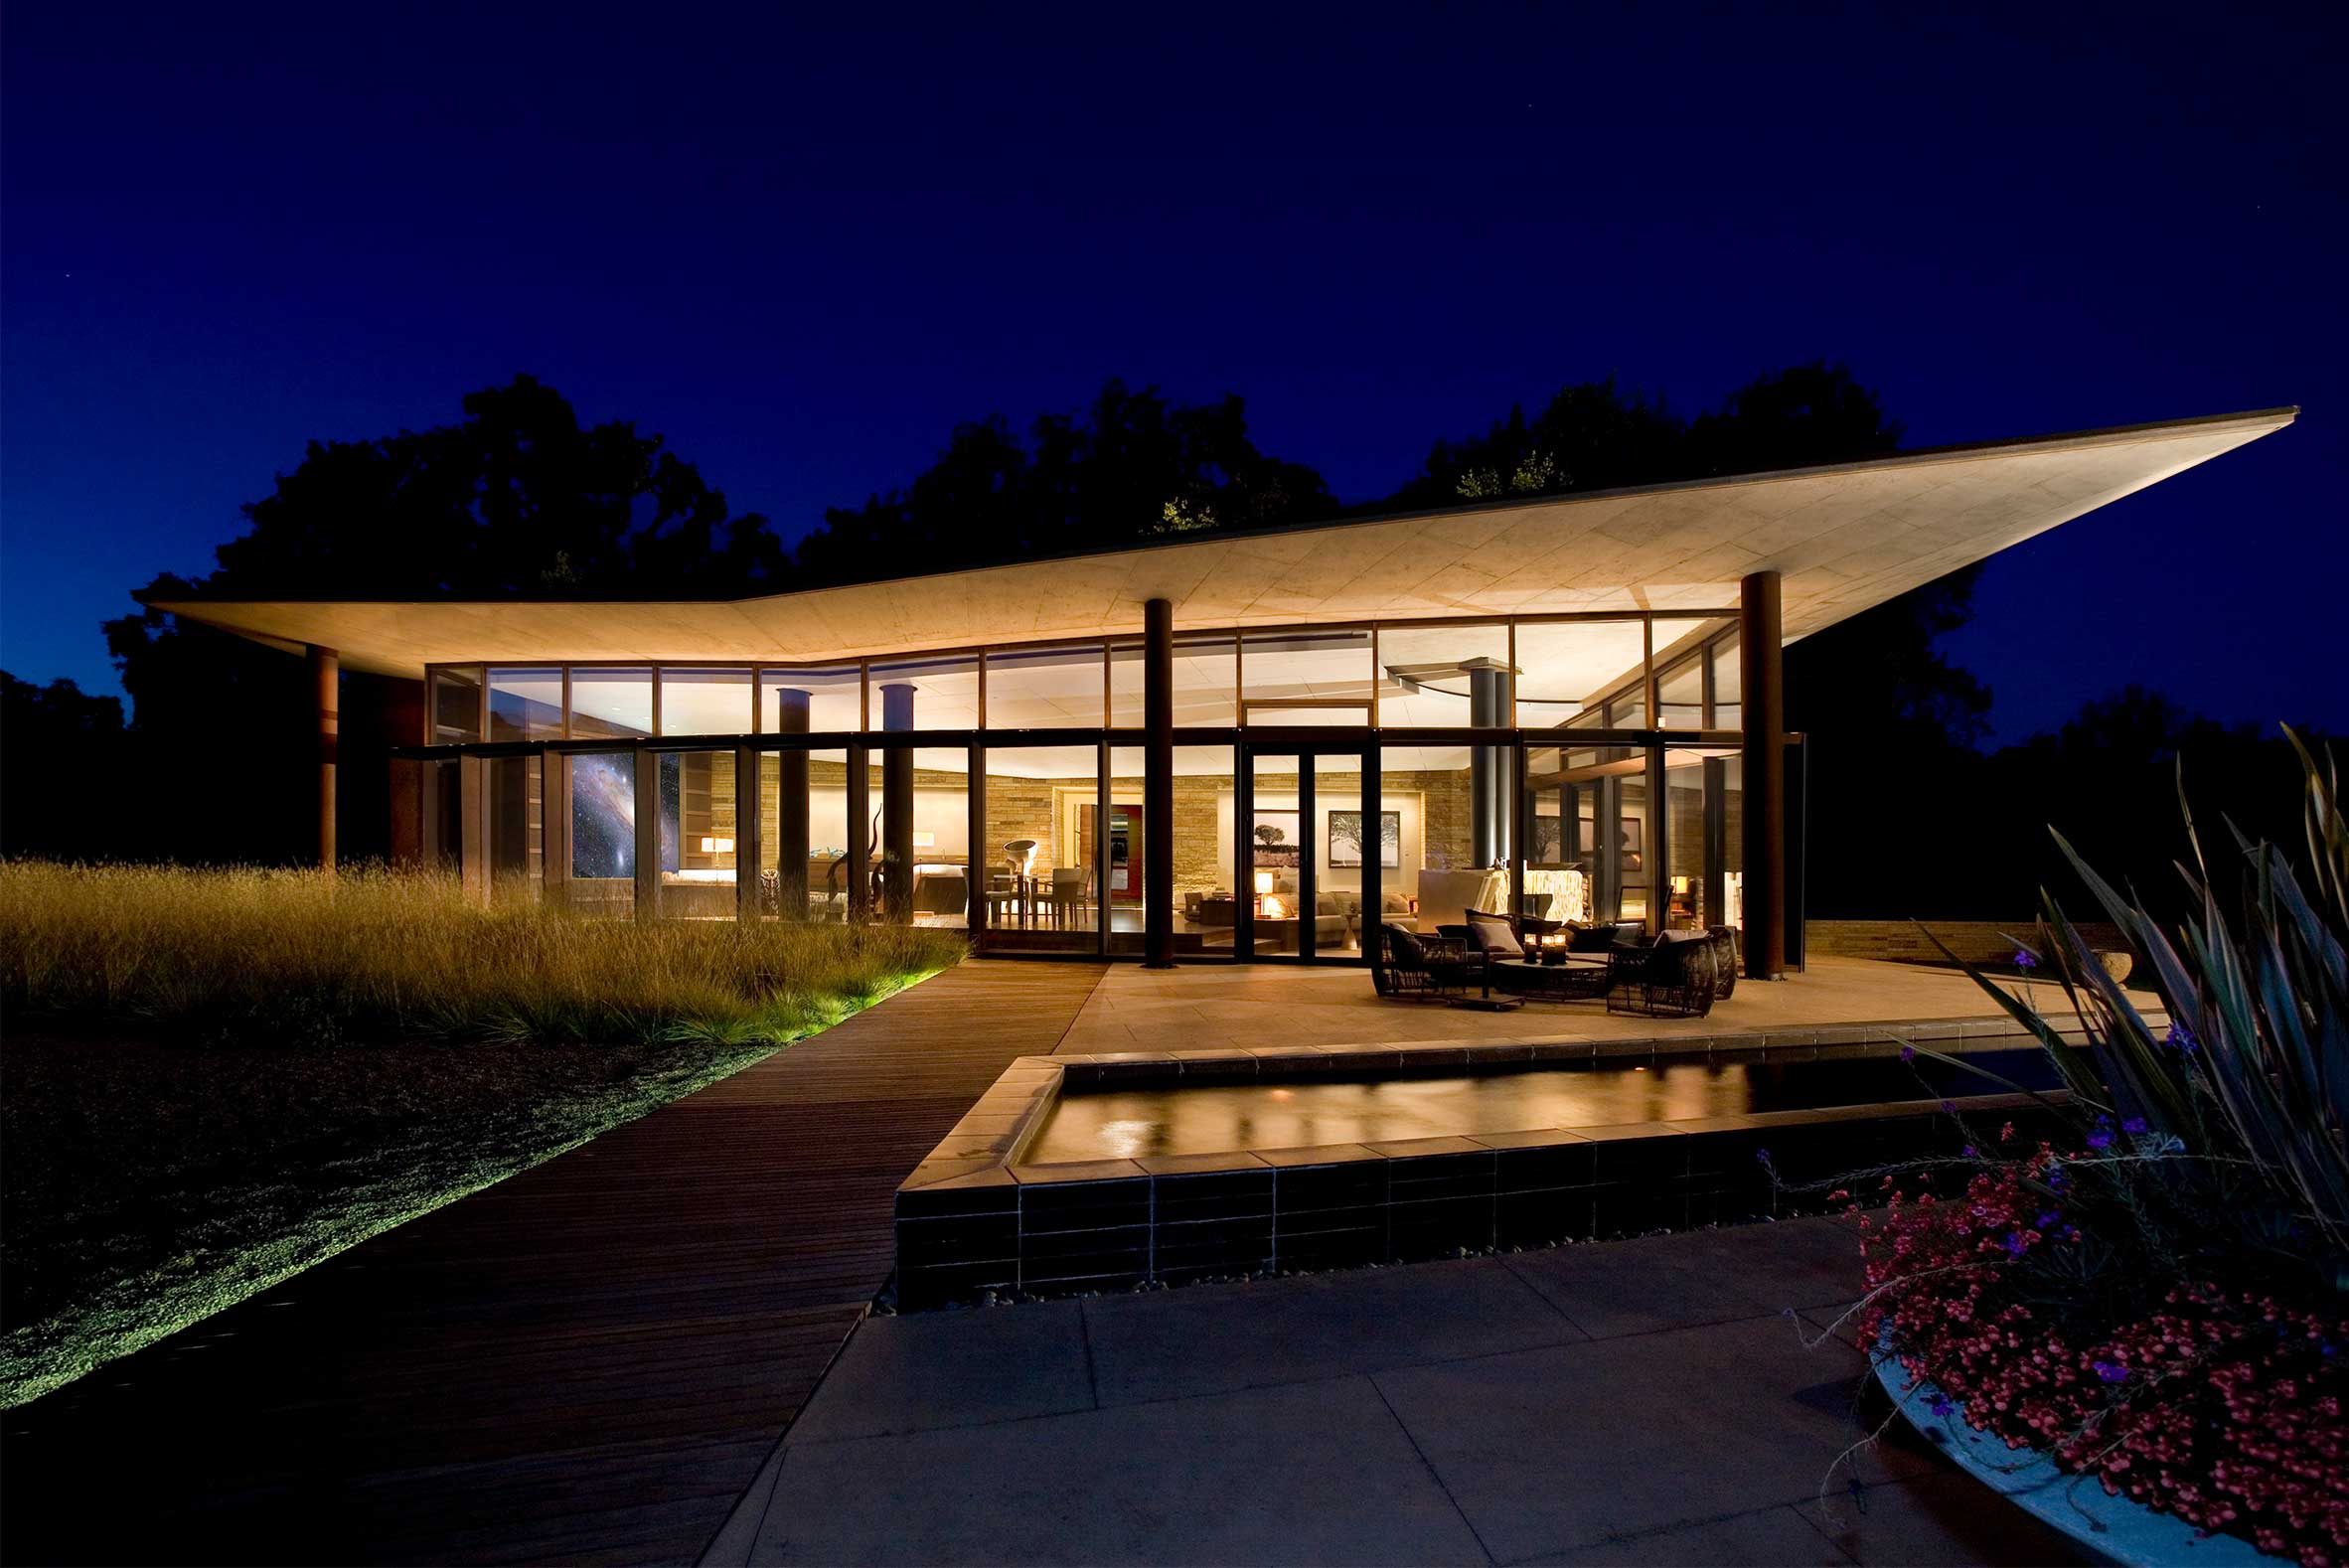 Dramatic Butterfly Roof at Night with Glowing Interior at Zen Spa in Sonoma Wine Country California